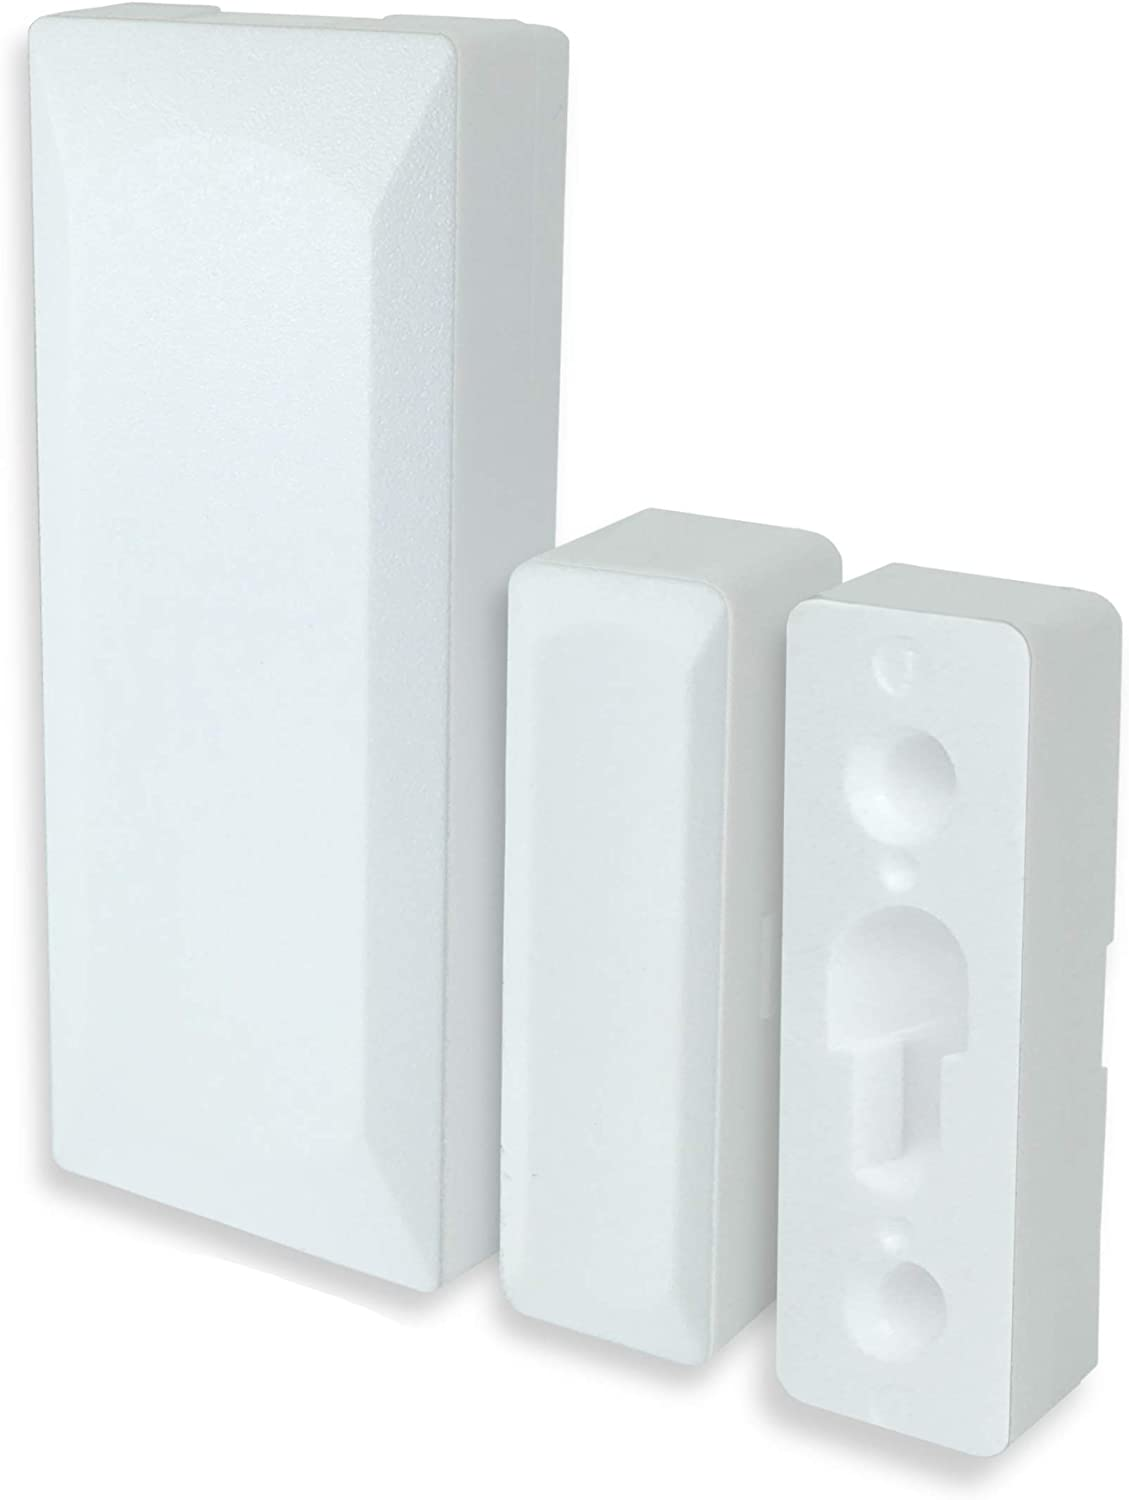 2gig & Vivint Compatible Door or Window Sensor